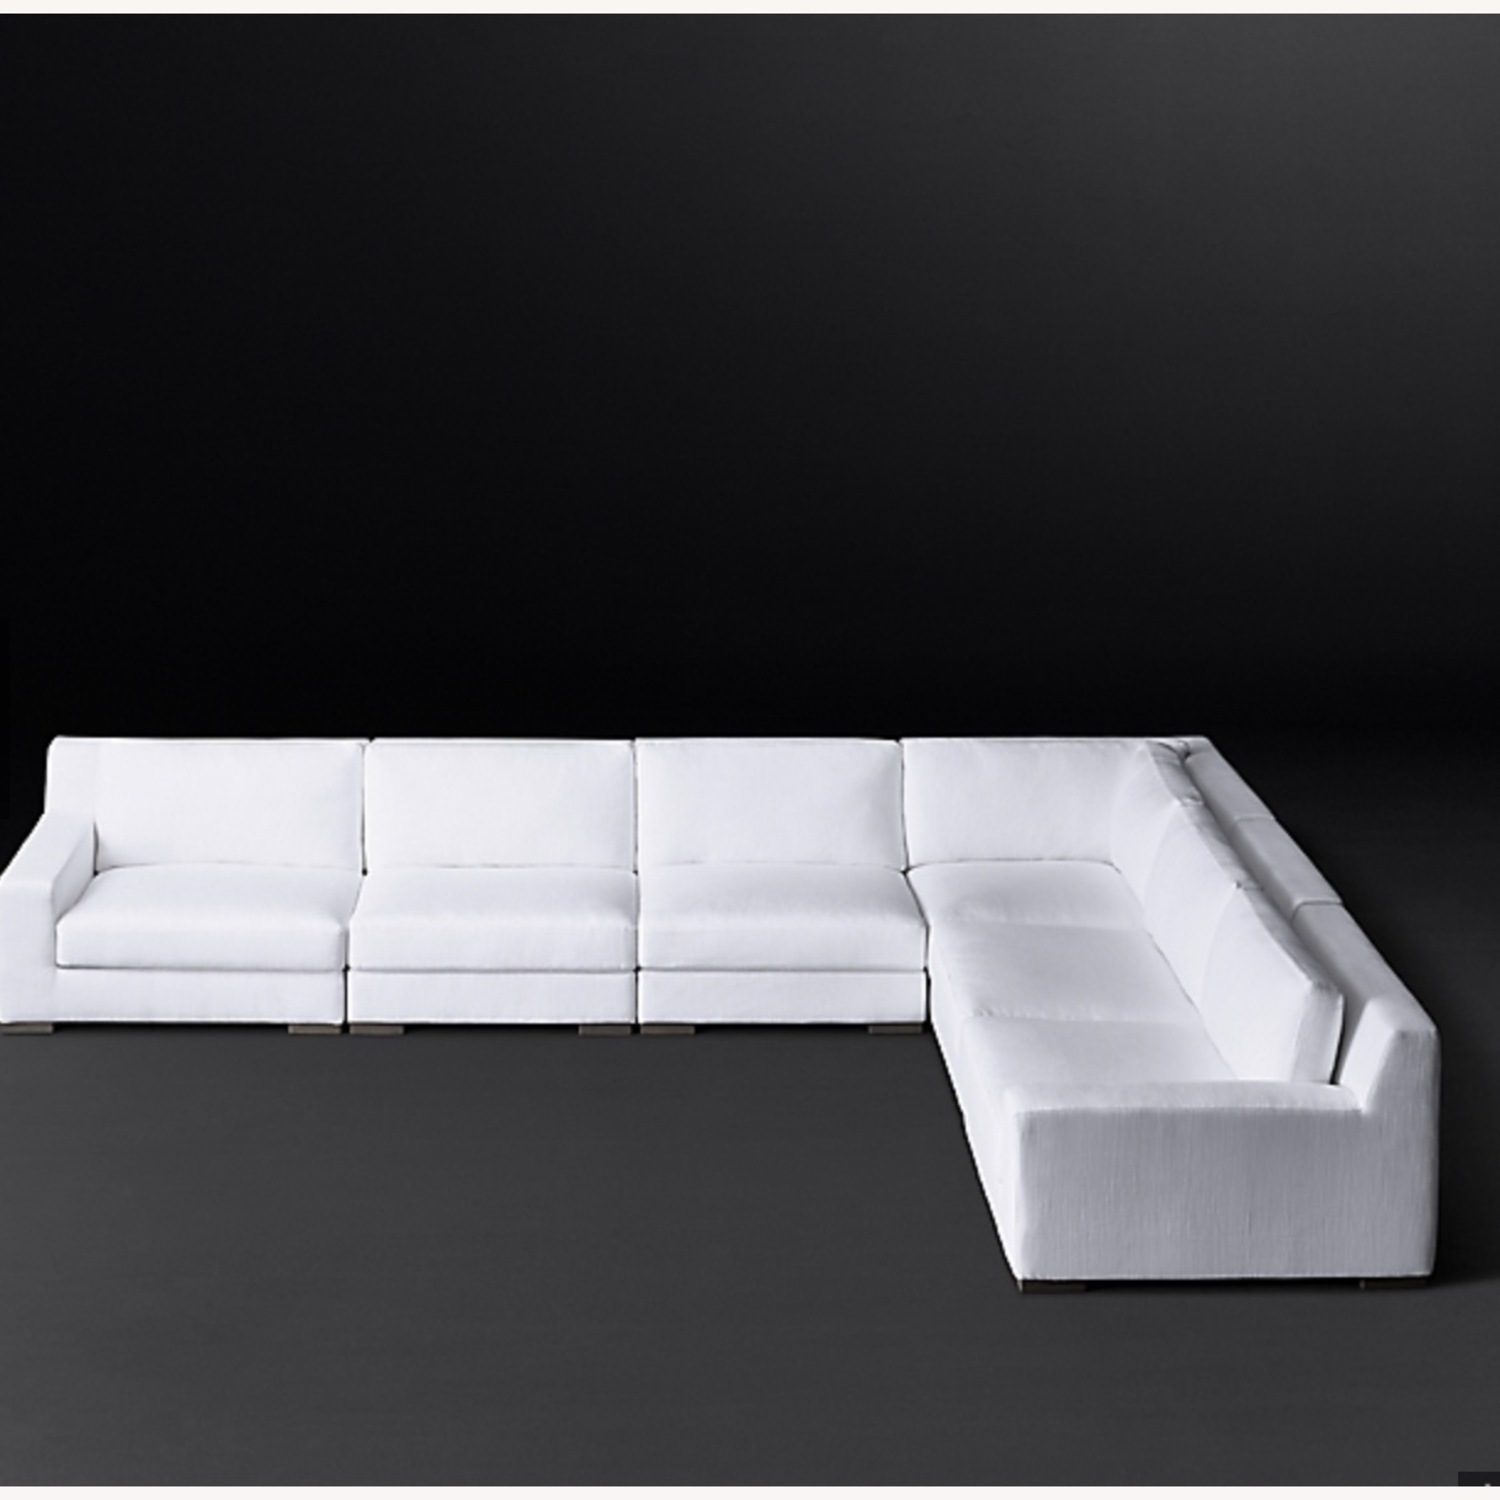 Restoration Hardware Modular Couch Sectional - image-2